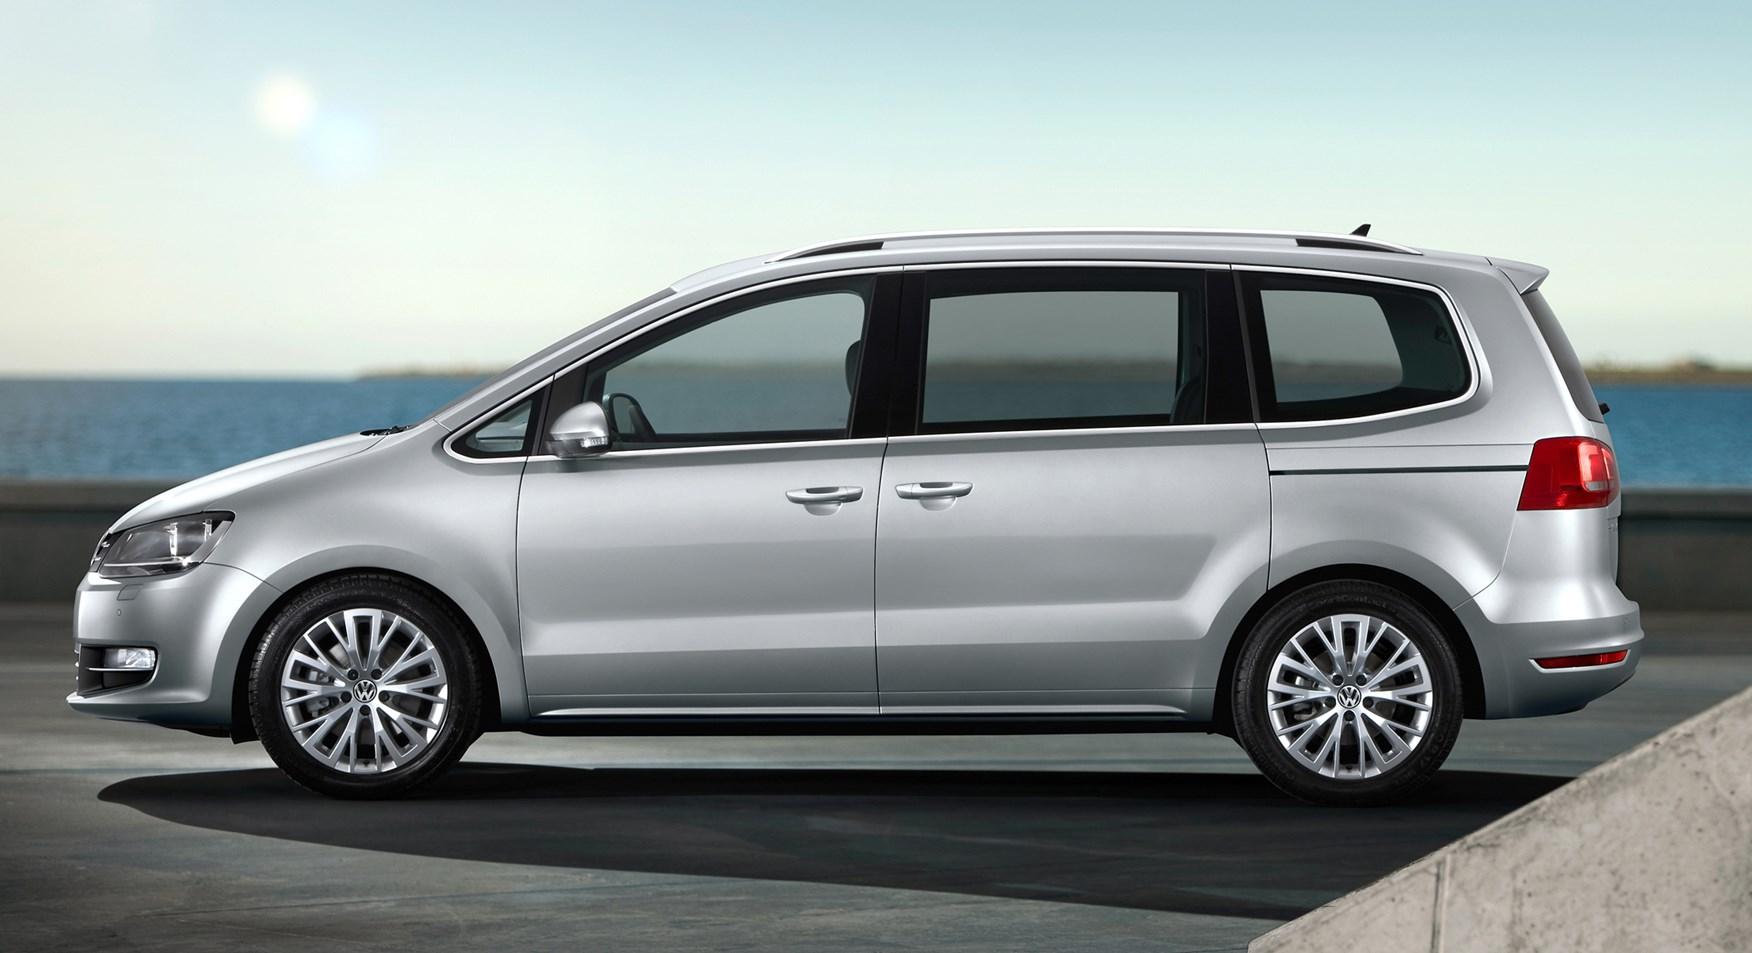 volkswagen sharan estate review 2010 parkers. Black Bedroom Furniture Sets. Home Design Ideas